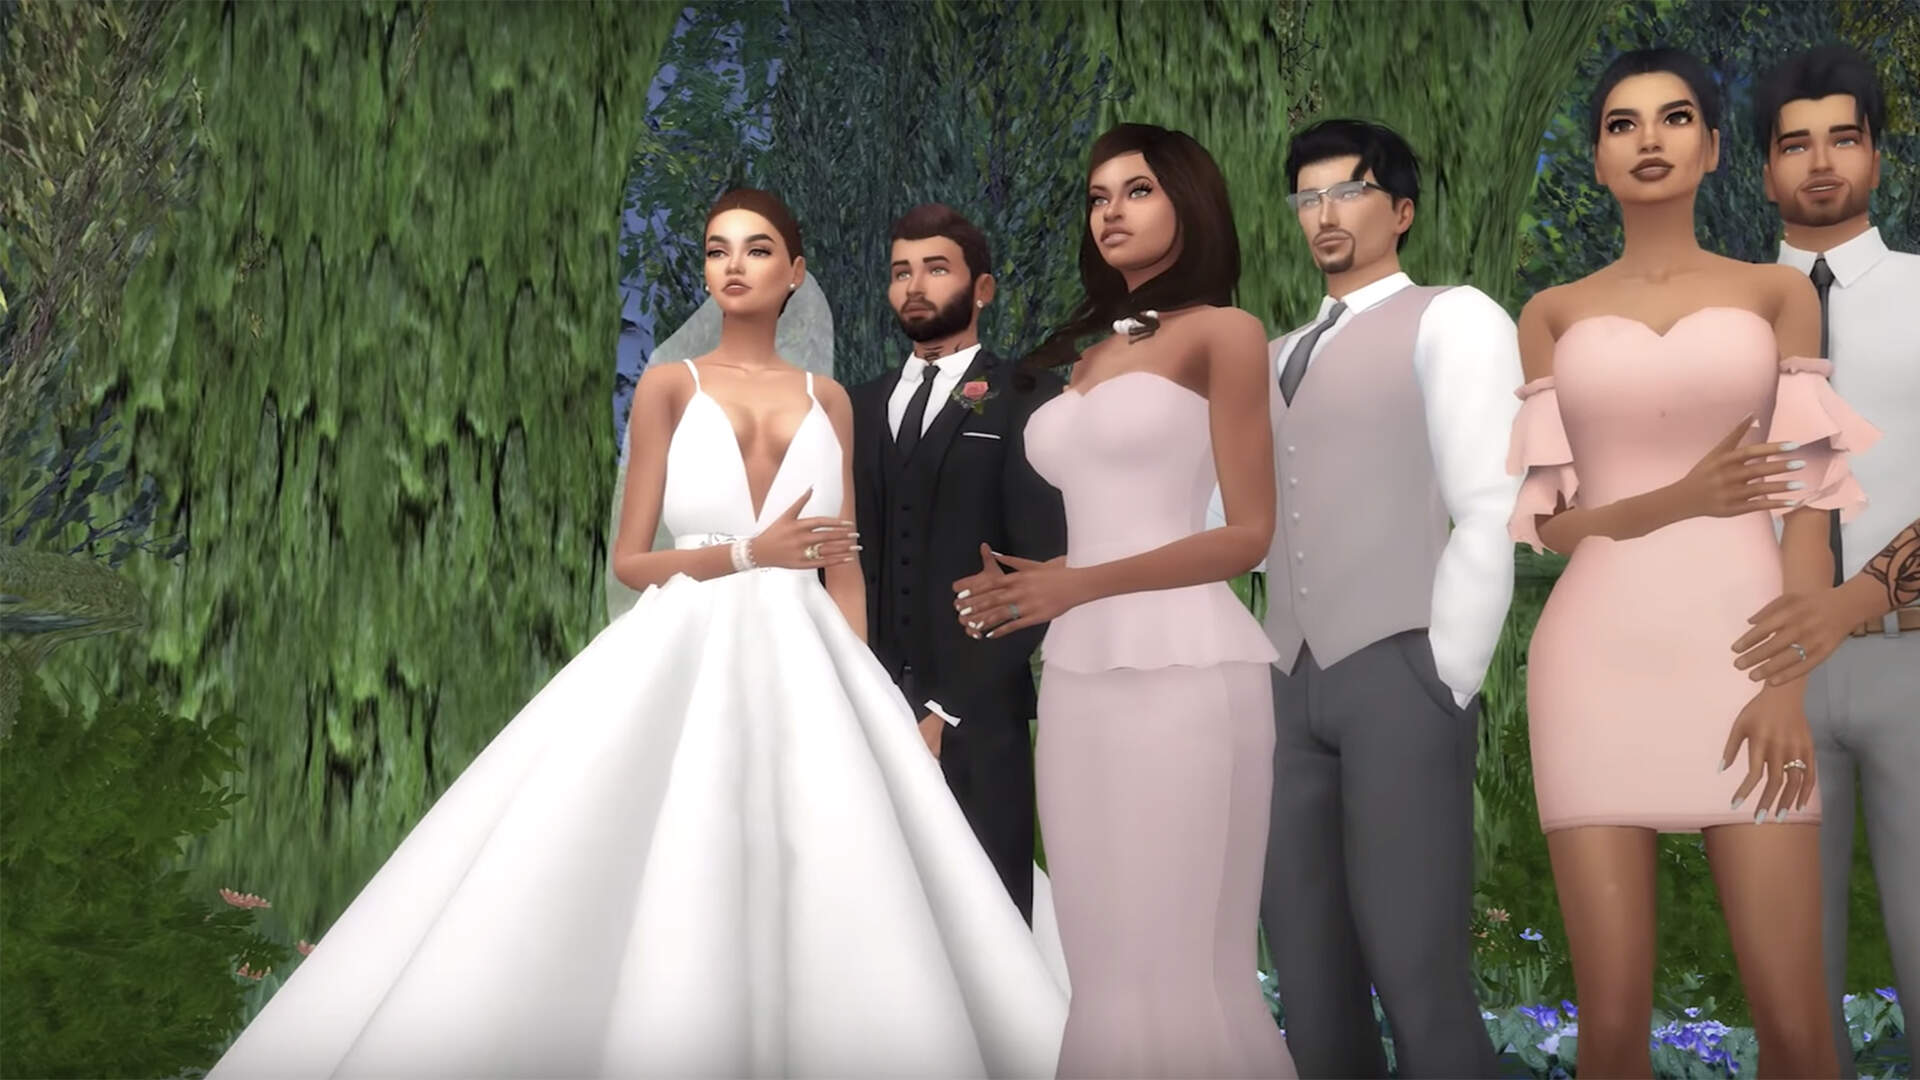 How a The Sims Machinima About a Pregnant 16-Year-Old Spawned a Soap Opera Dynasty